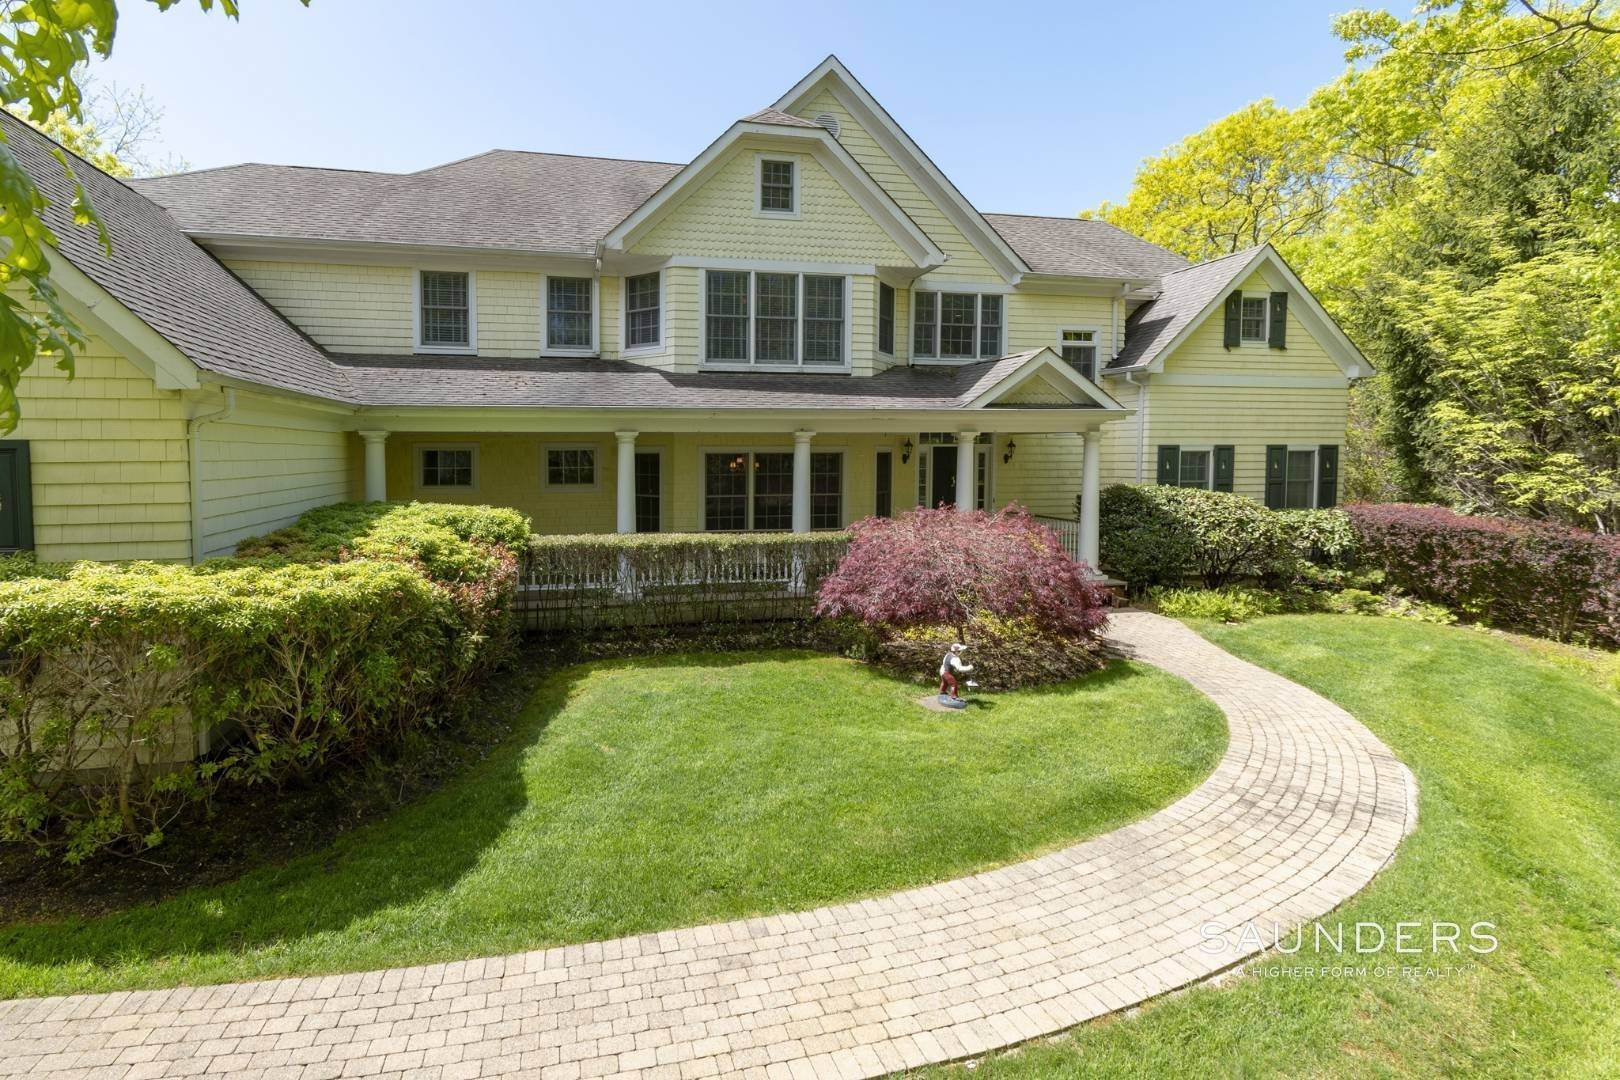 2. Single Family Homes for Sale at East Hampton Gated With Pool On 2 Acres 13 Old Hollow Lane, East Hampton, East Hampton Town, NY 11937